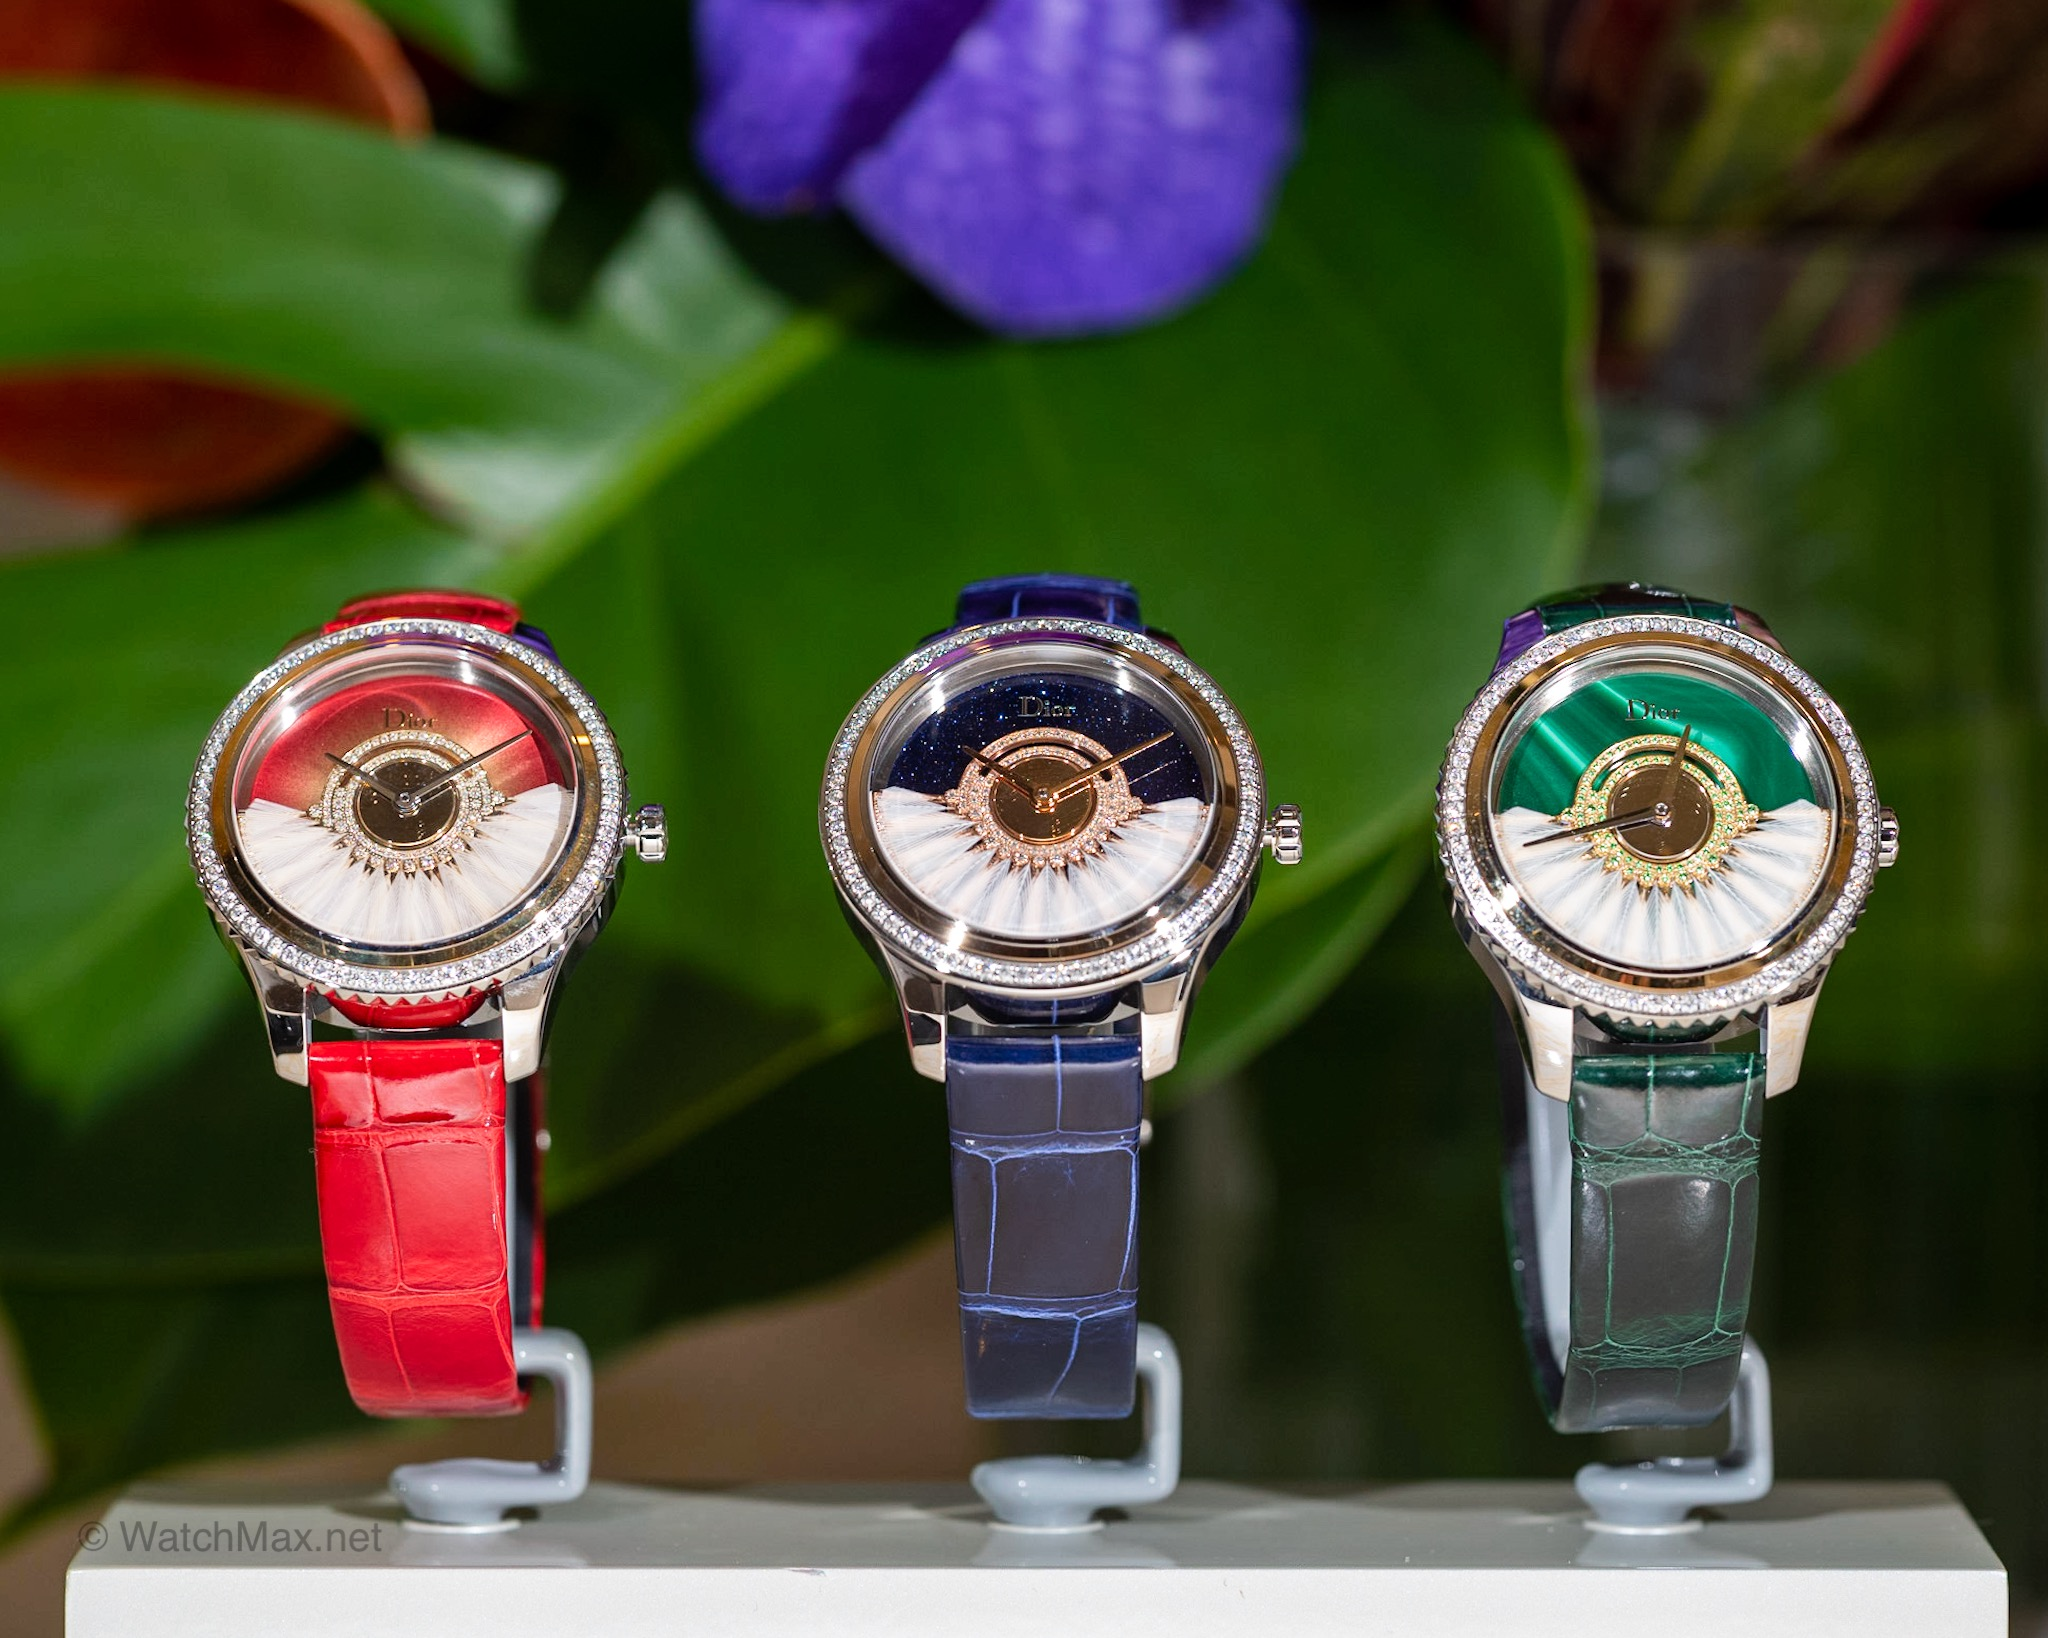 Dior novelties first look - Brief look at the exceptional ladies timepieces from the Grande Maison of couture from COUTUREtime 2019 in Las Vegas, NV